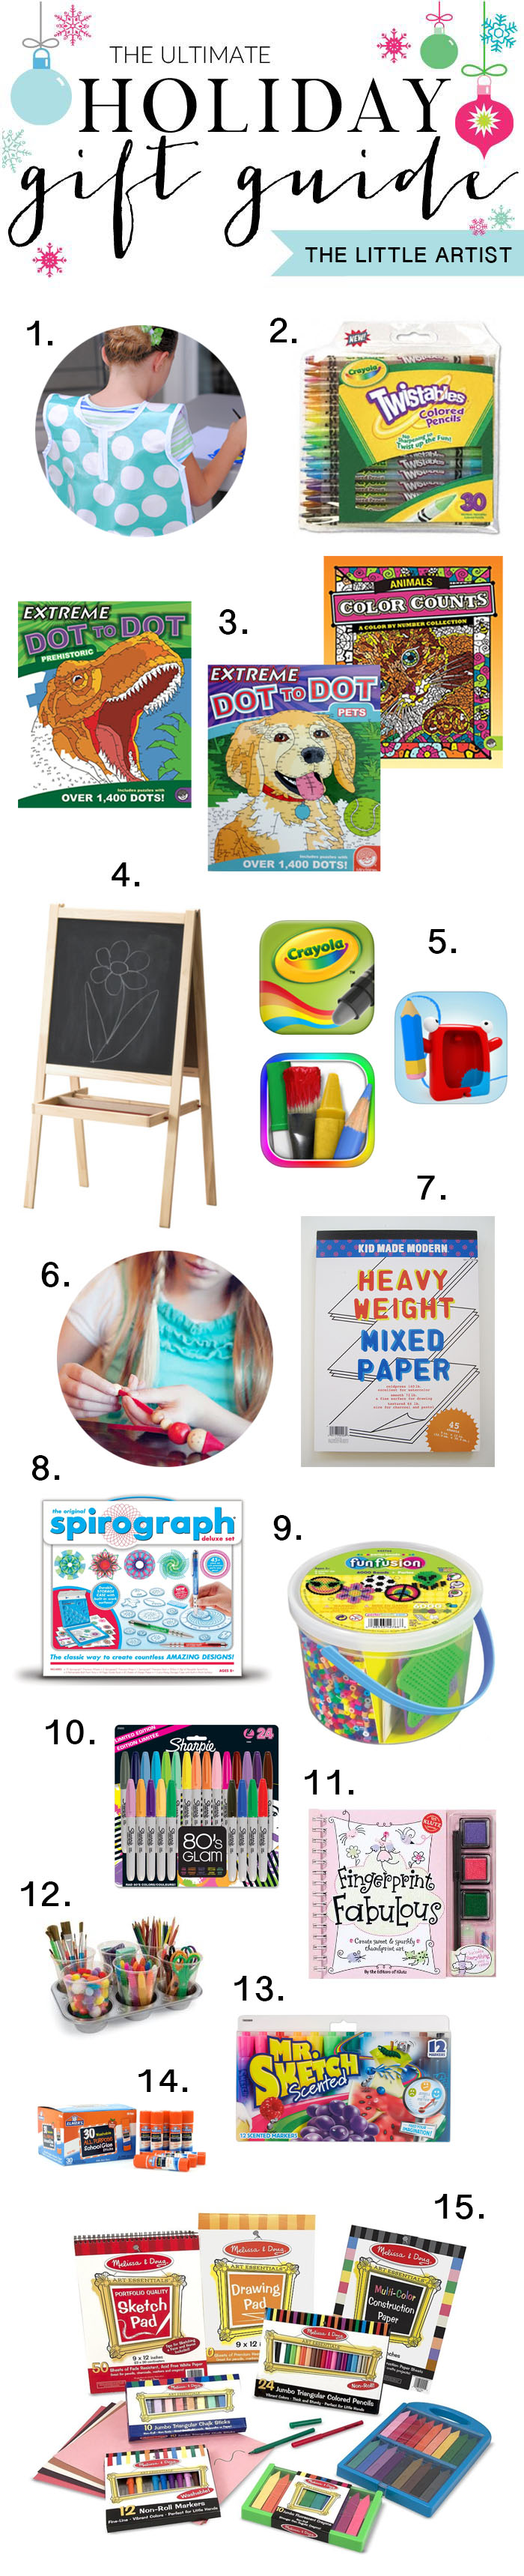 The Ultimate Holiday Gift Guide for the Little Artist on your List